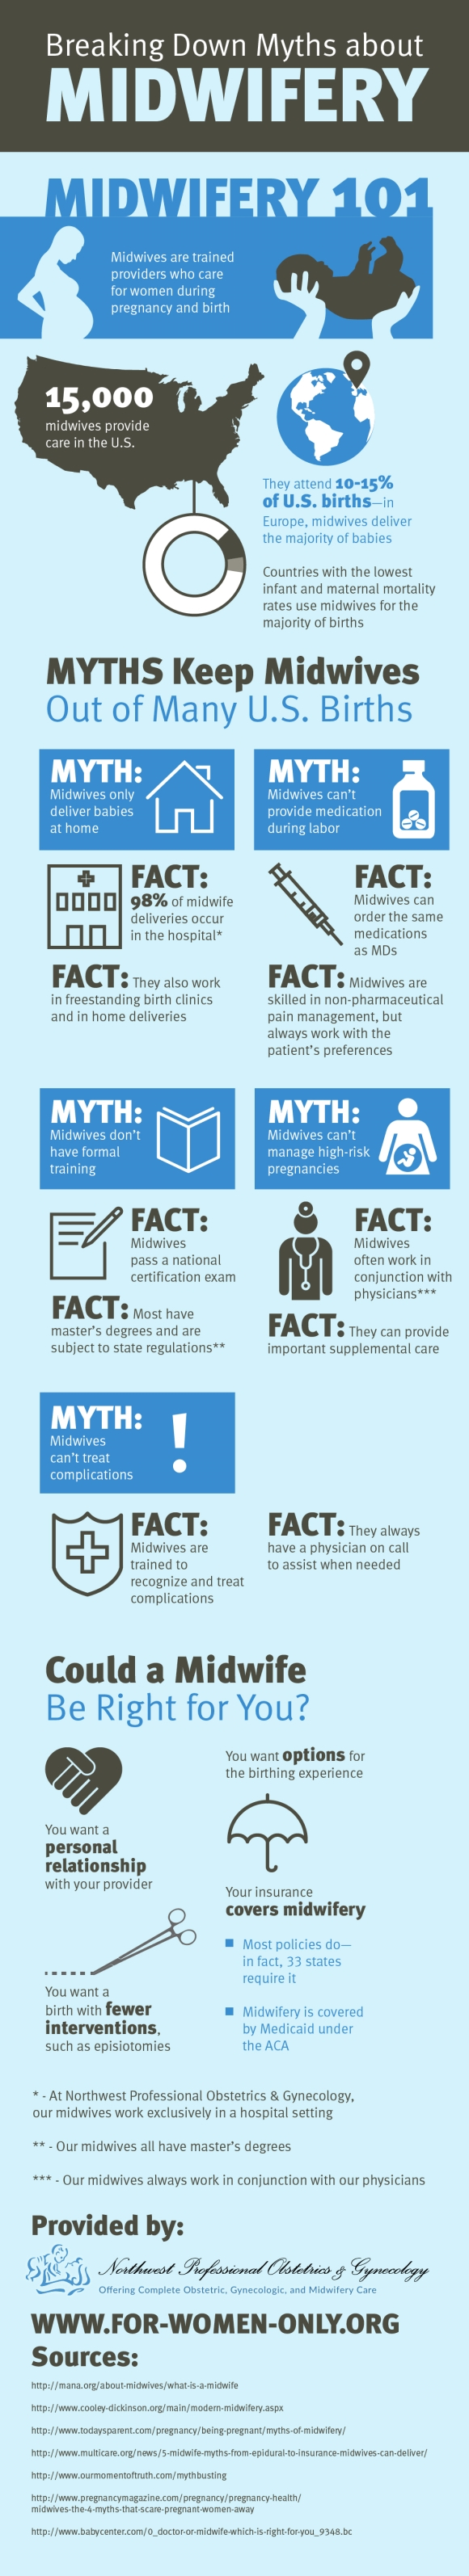 Did you know that midwives are actually able to order the same medications that medical doctors can? Learn all about midwifery by reading through this infographic.